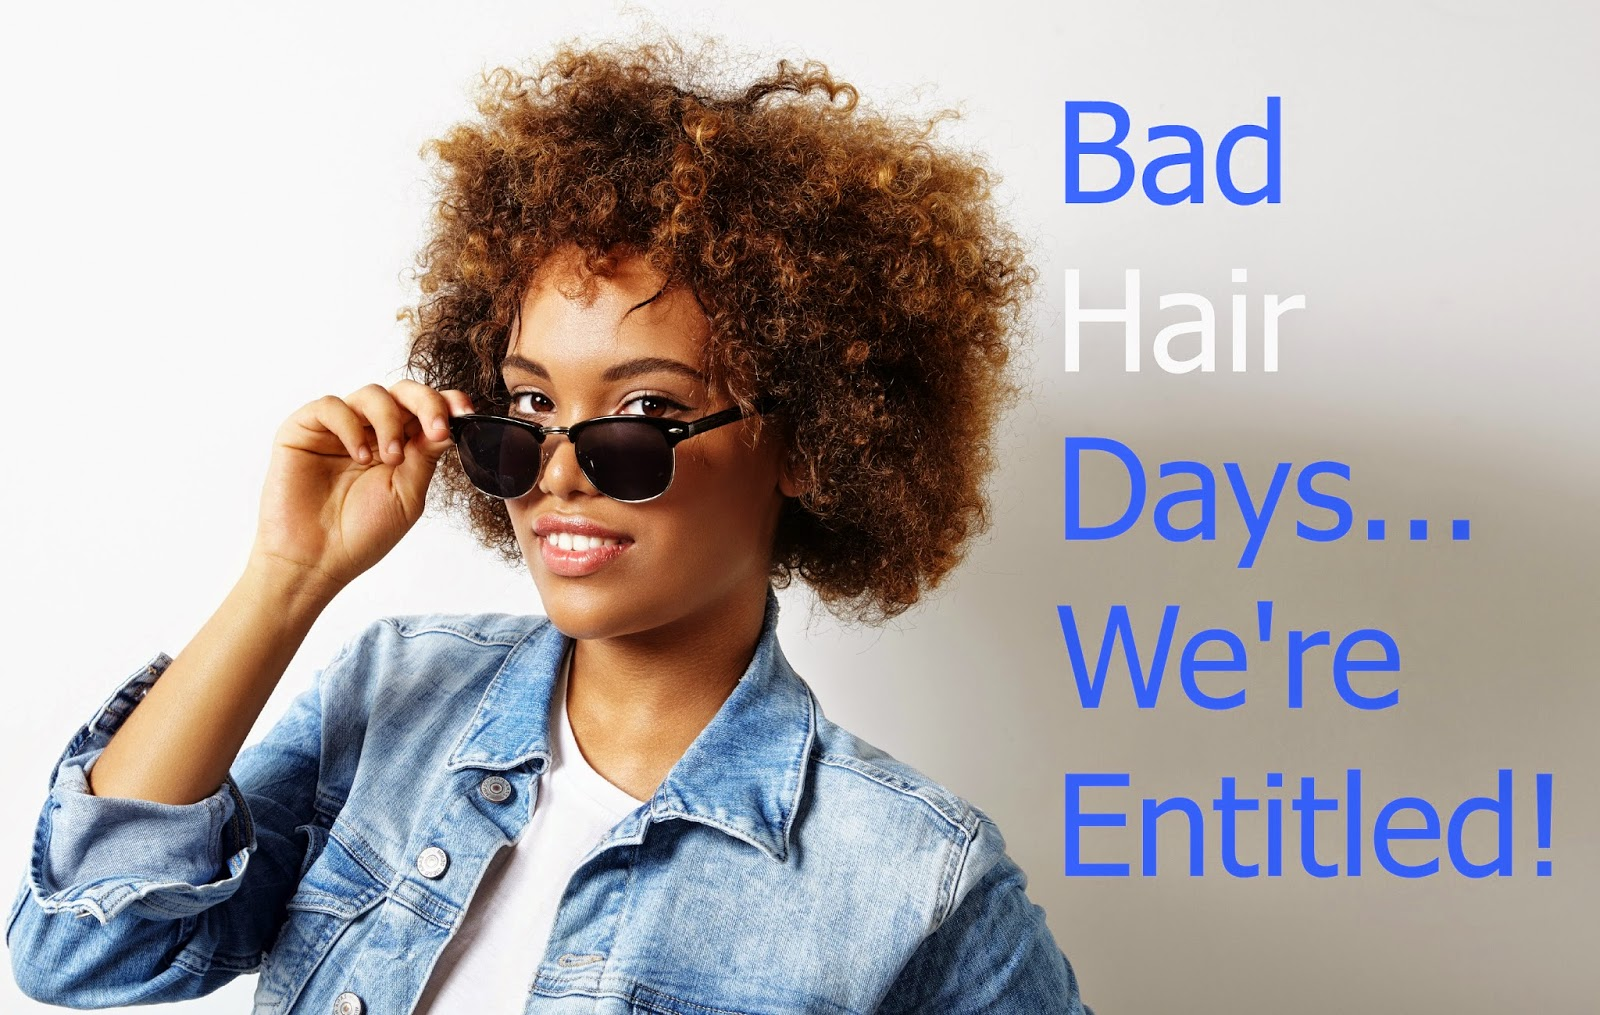 Bad Hair days...we're entitled!